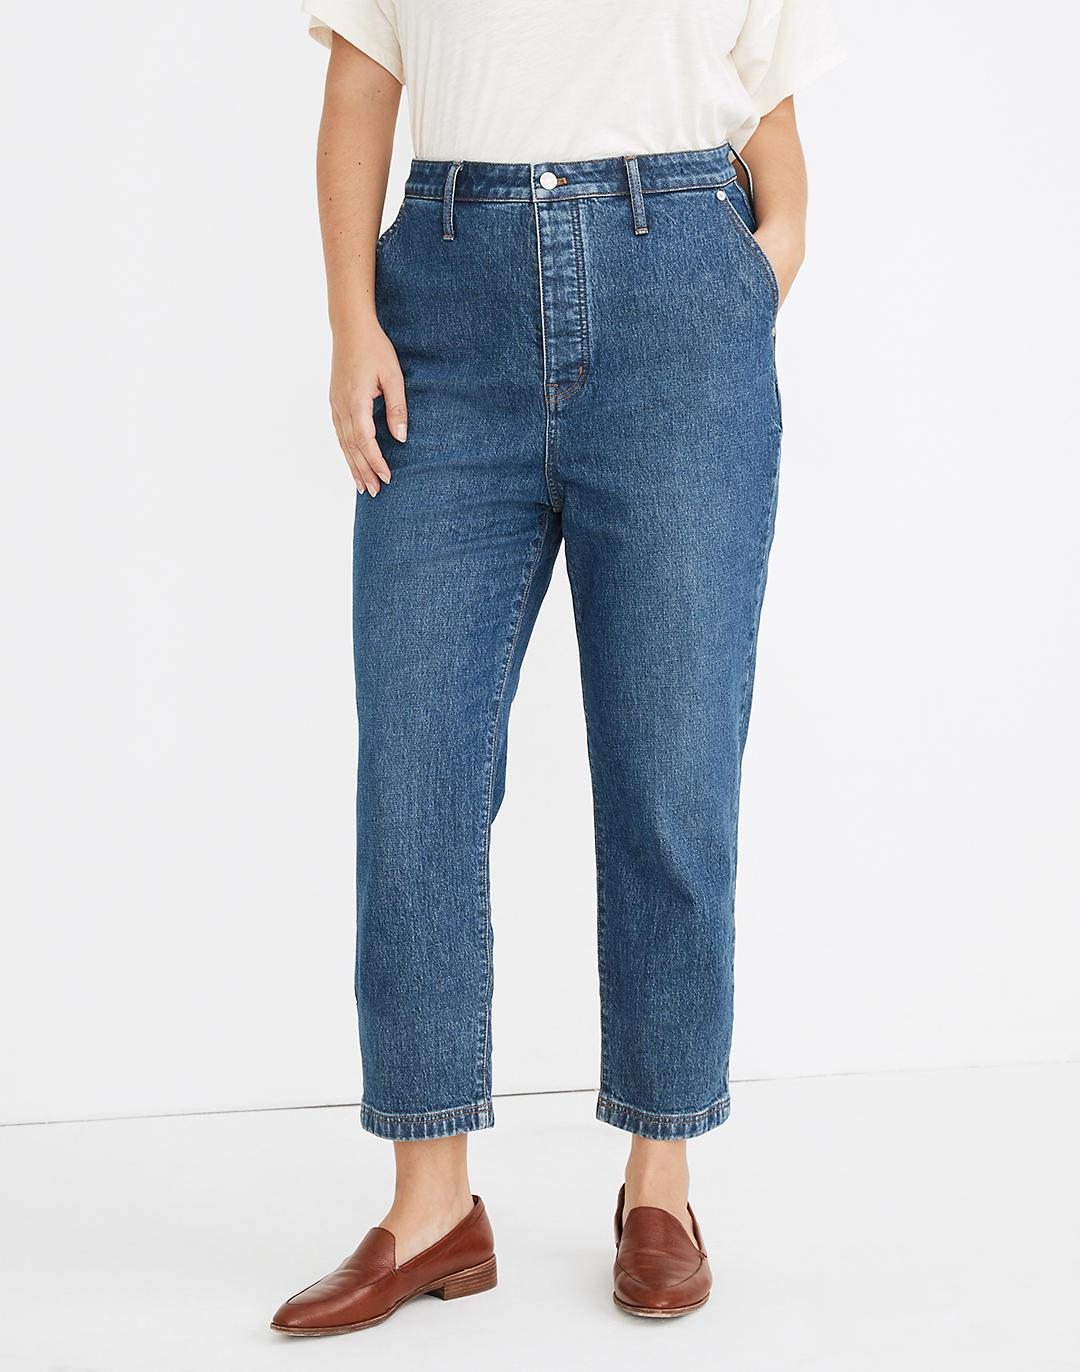 The Perfect Vintage Jean in Minot Wash: Trouser Edition 3